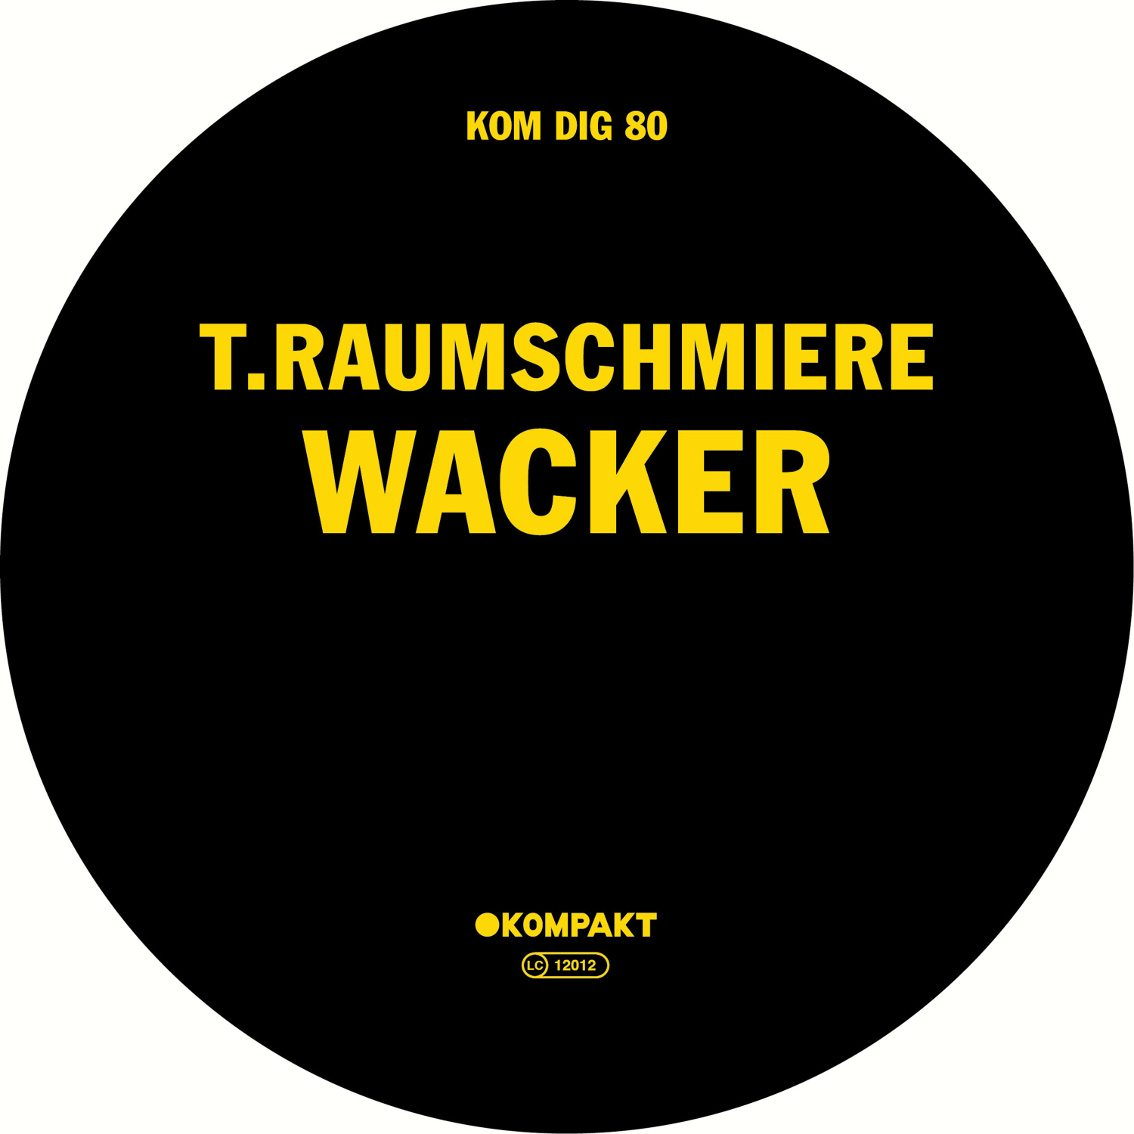 Brand new track'Wacker' by T.Raumschmiere gets the video treatment - watch it here